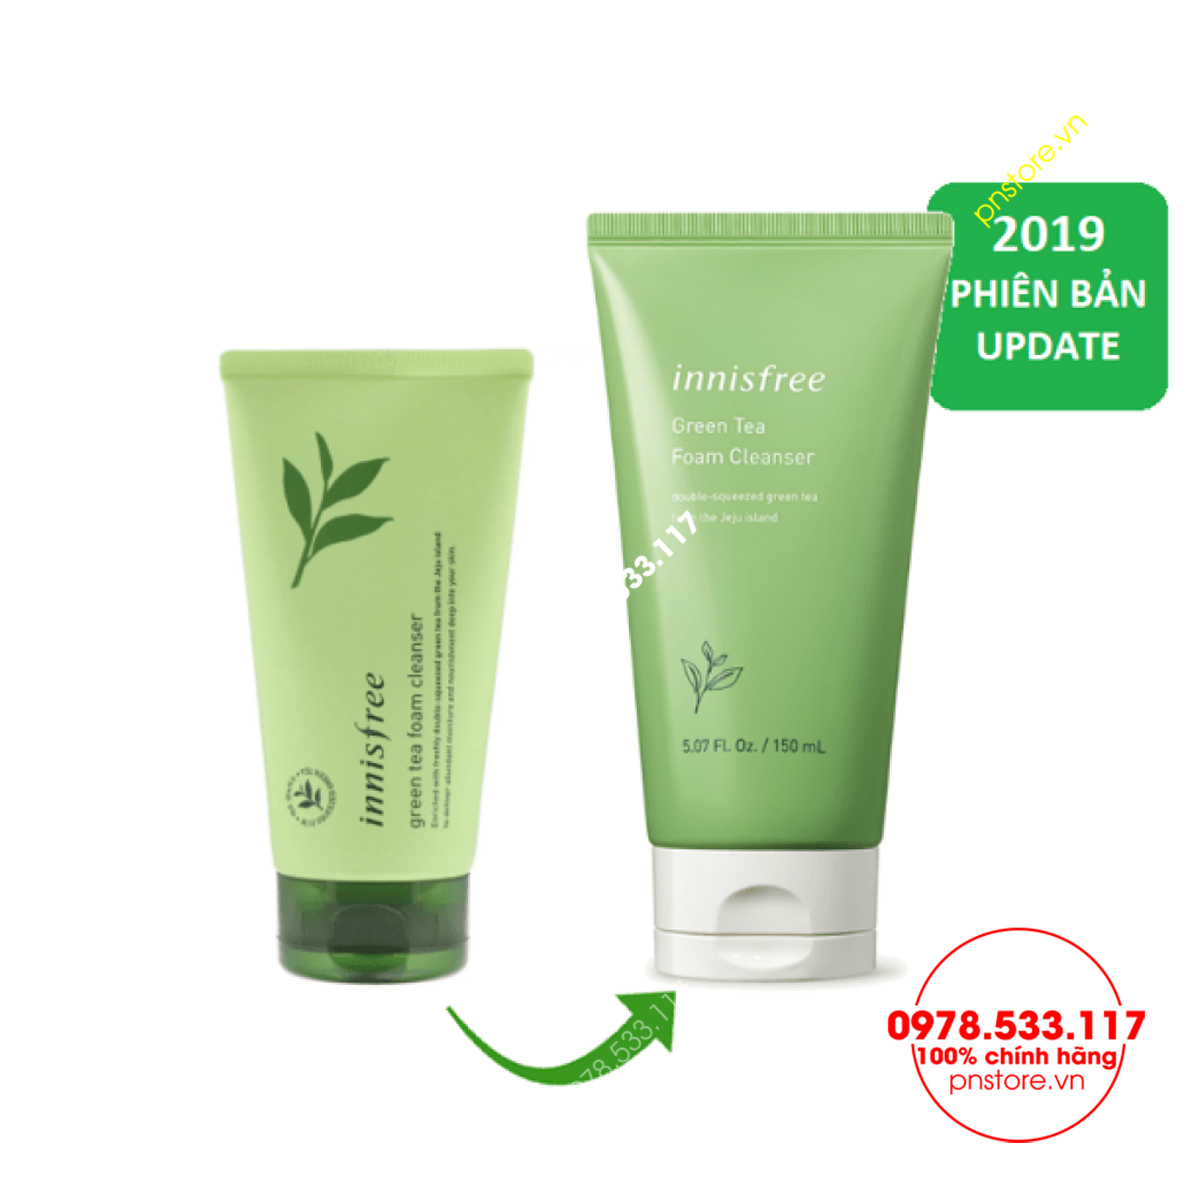 sua-rua-mat-tri-mun-tra-xanh-innisfree-green-tea-cleansing-foam-150ml-chinh-hang-han-quoc